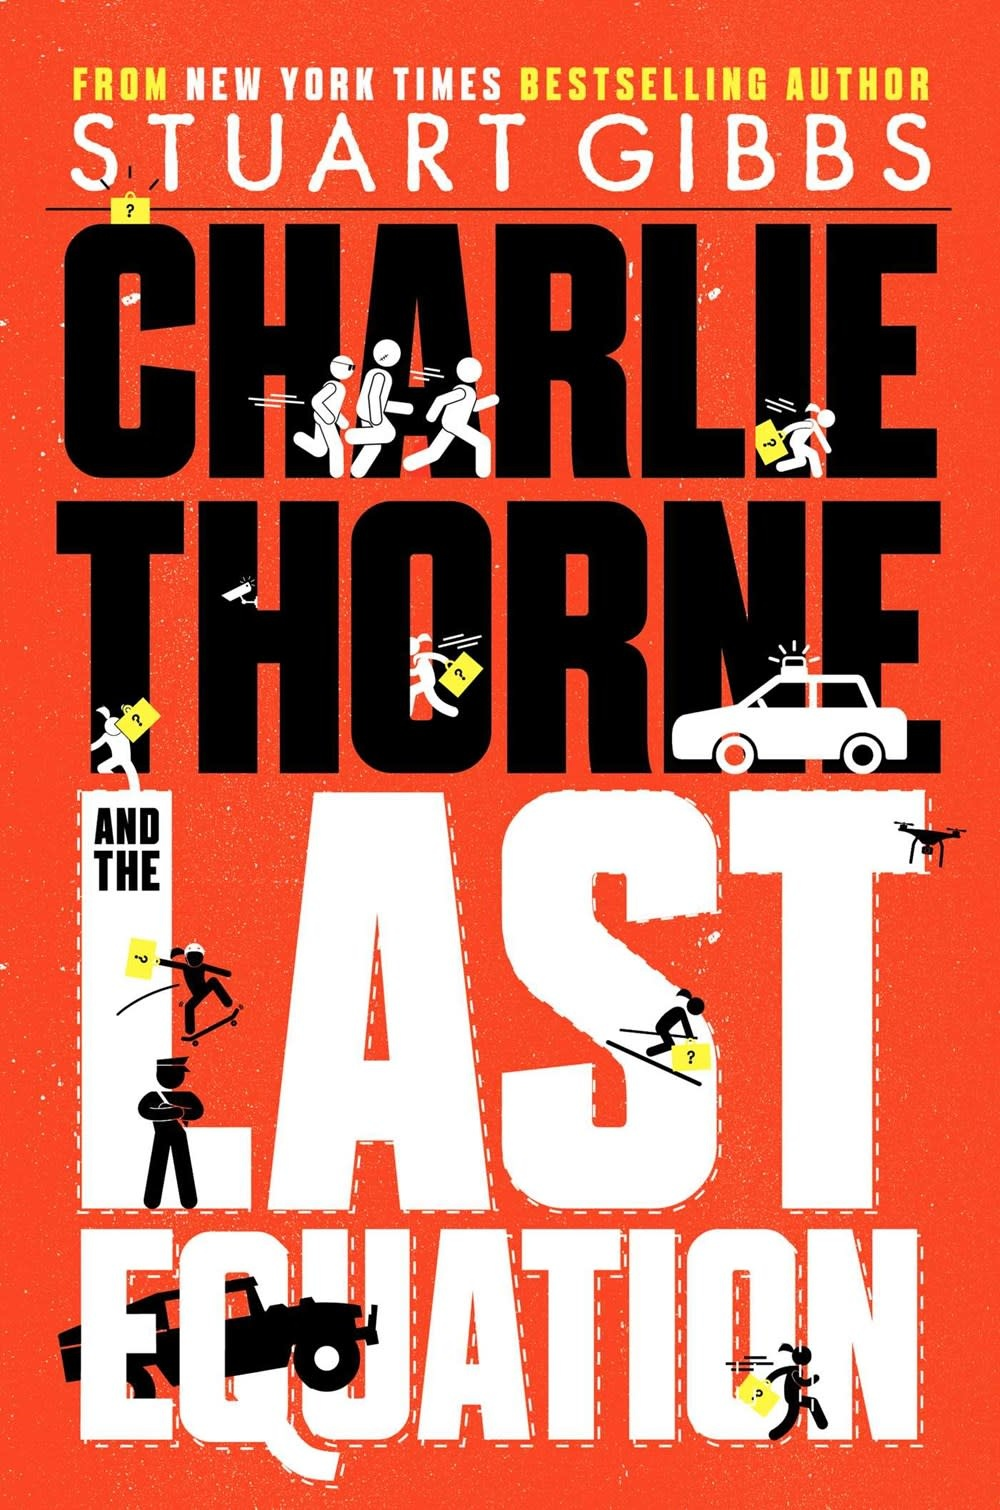 Simon & Schuster Books for Young Readers Charlie Thorne: The Last Equation